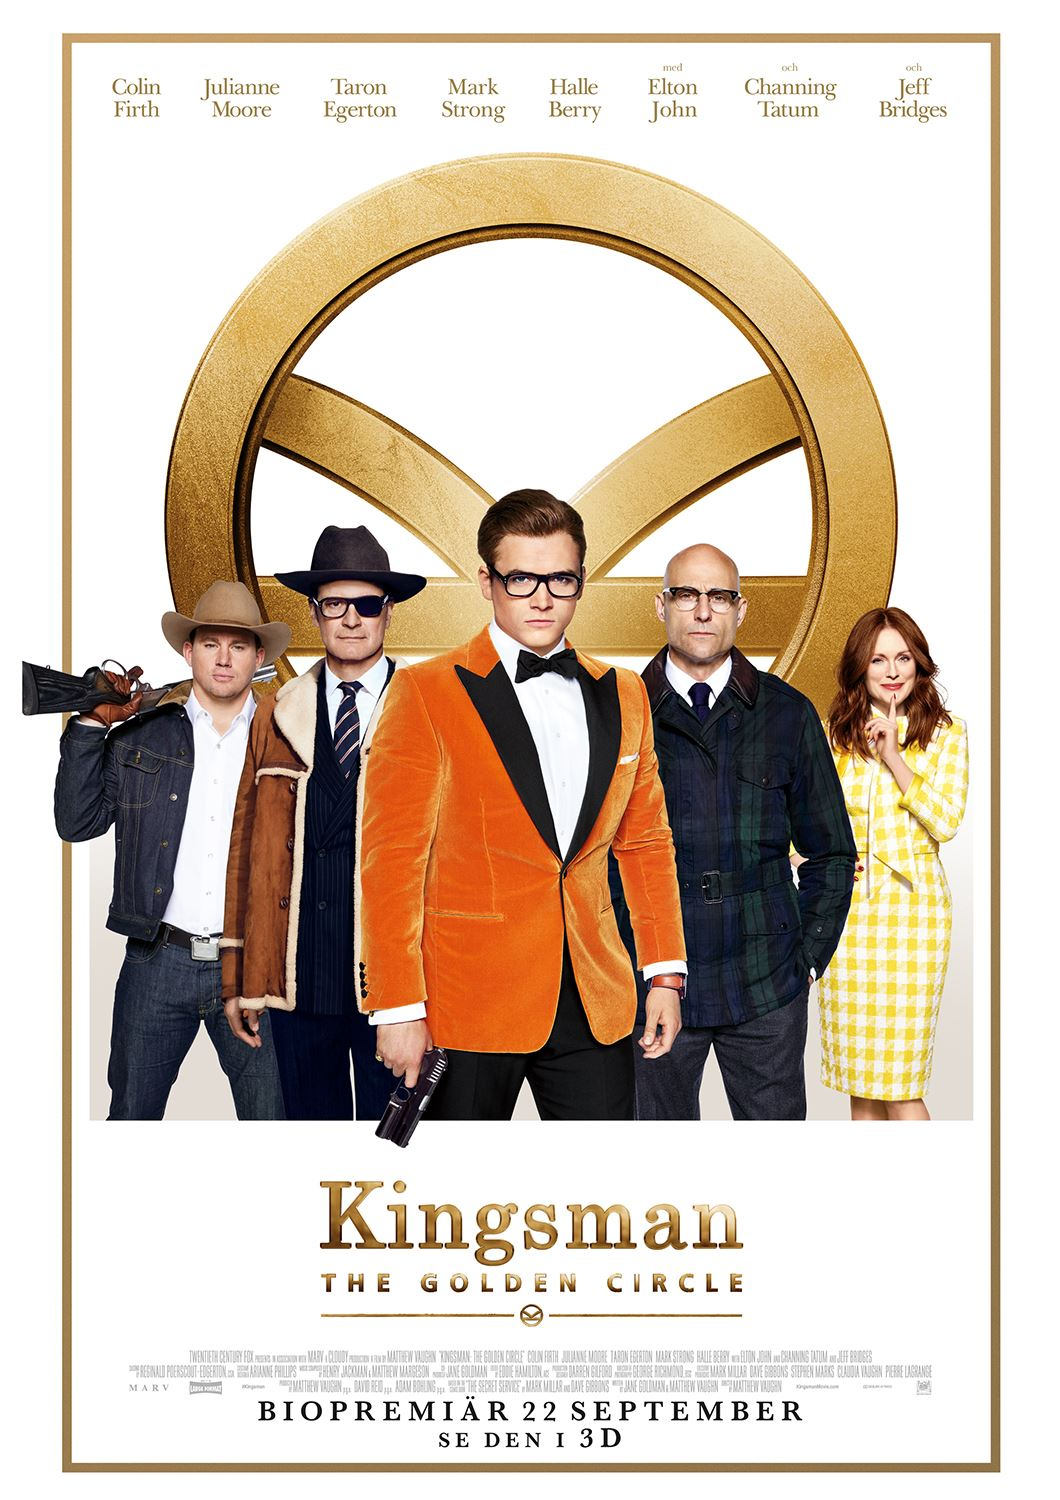 Bio: Kingsman: The Golden Circle